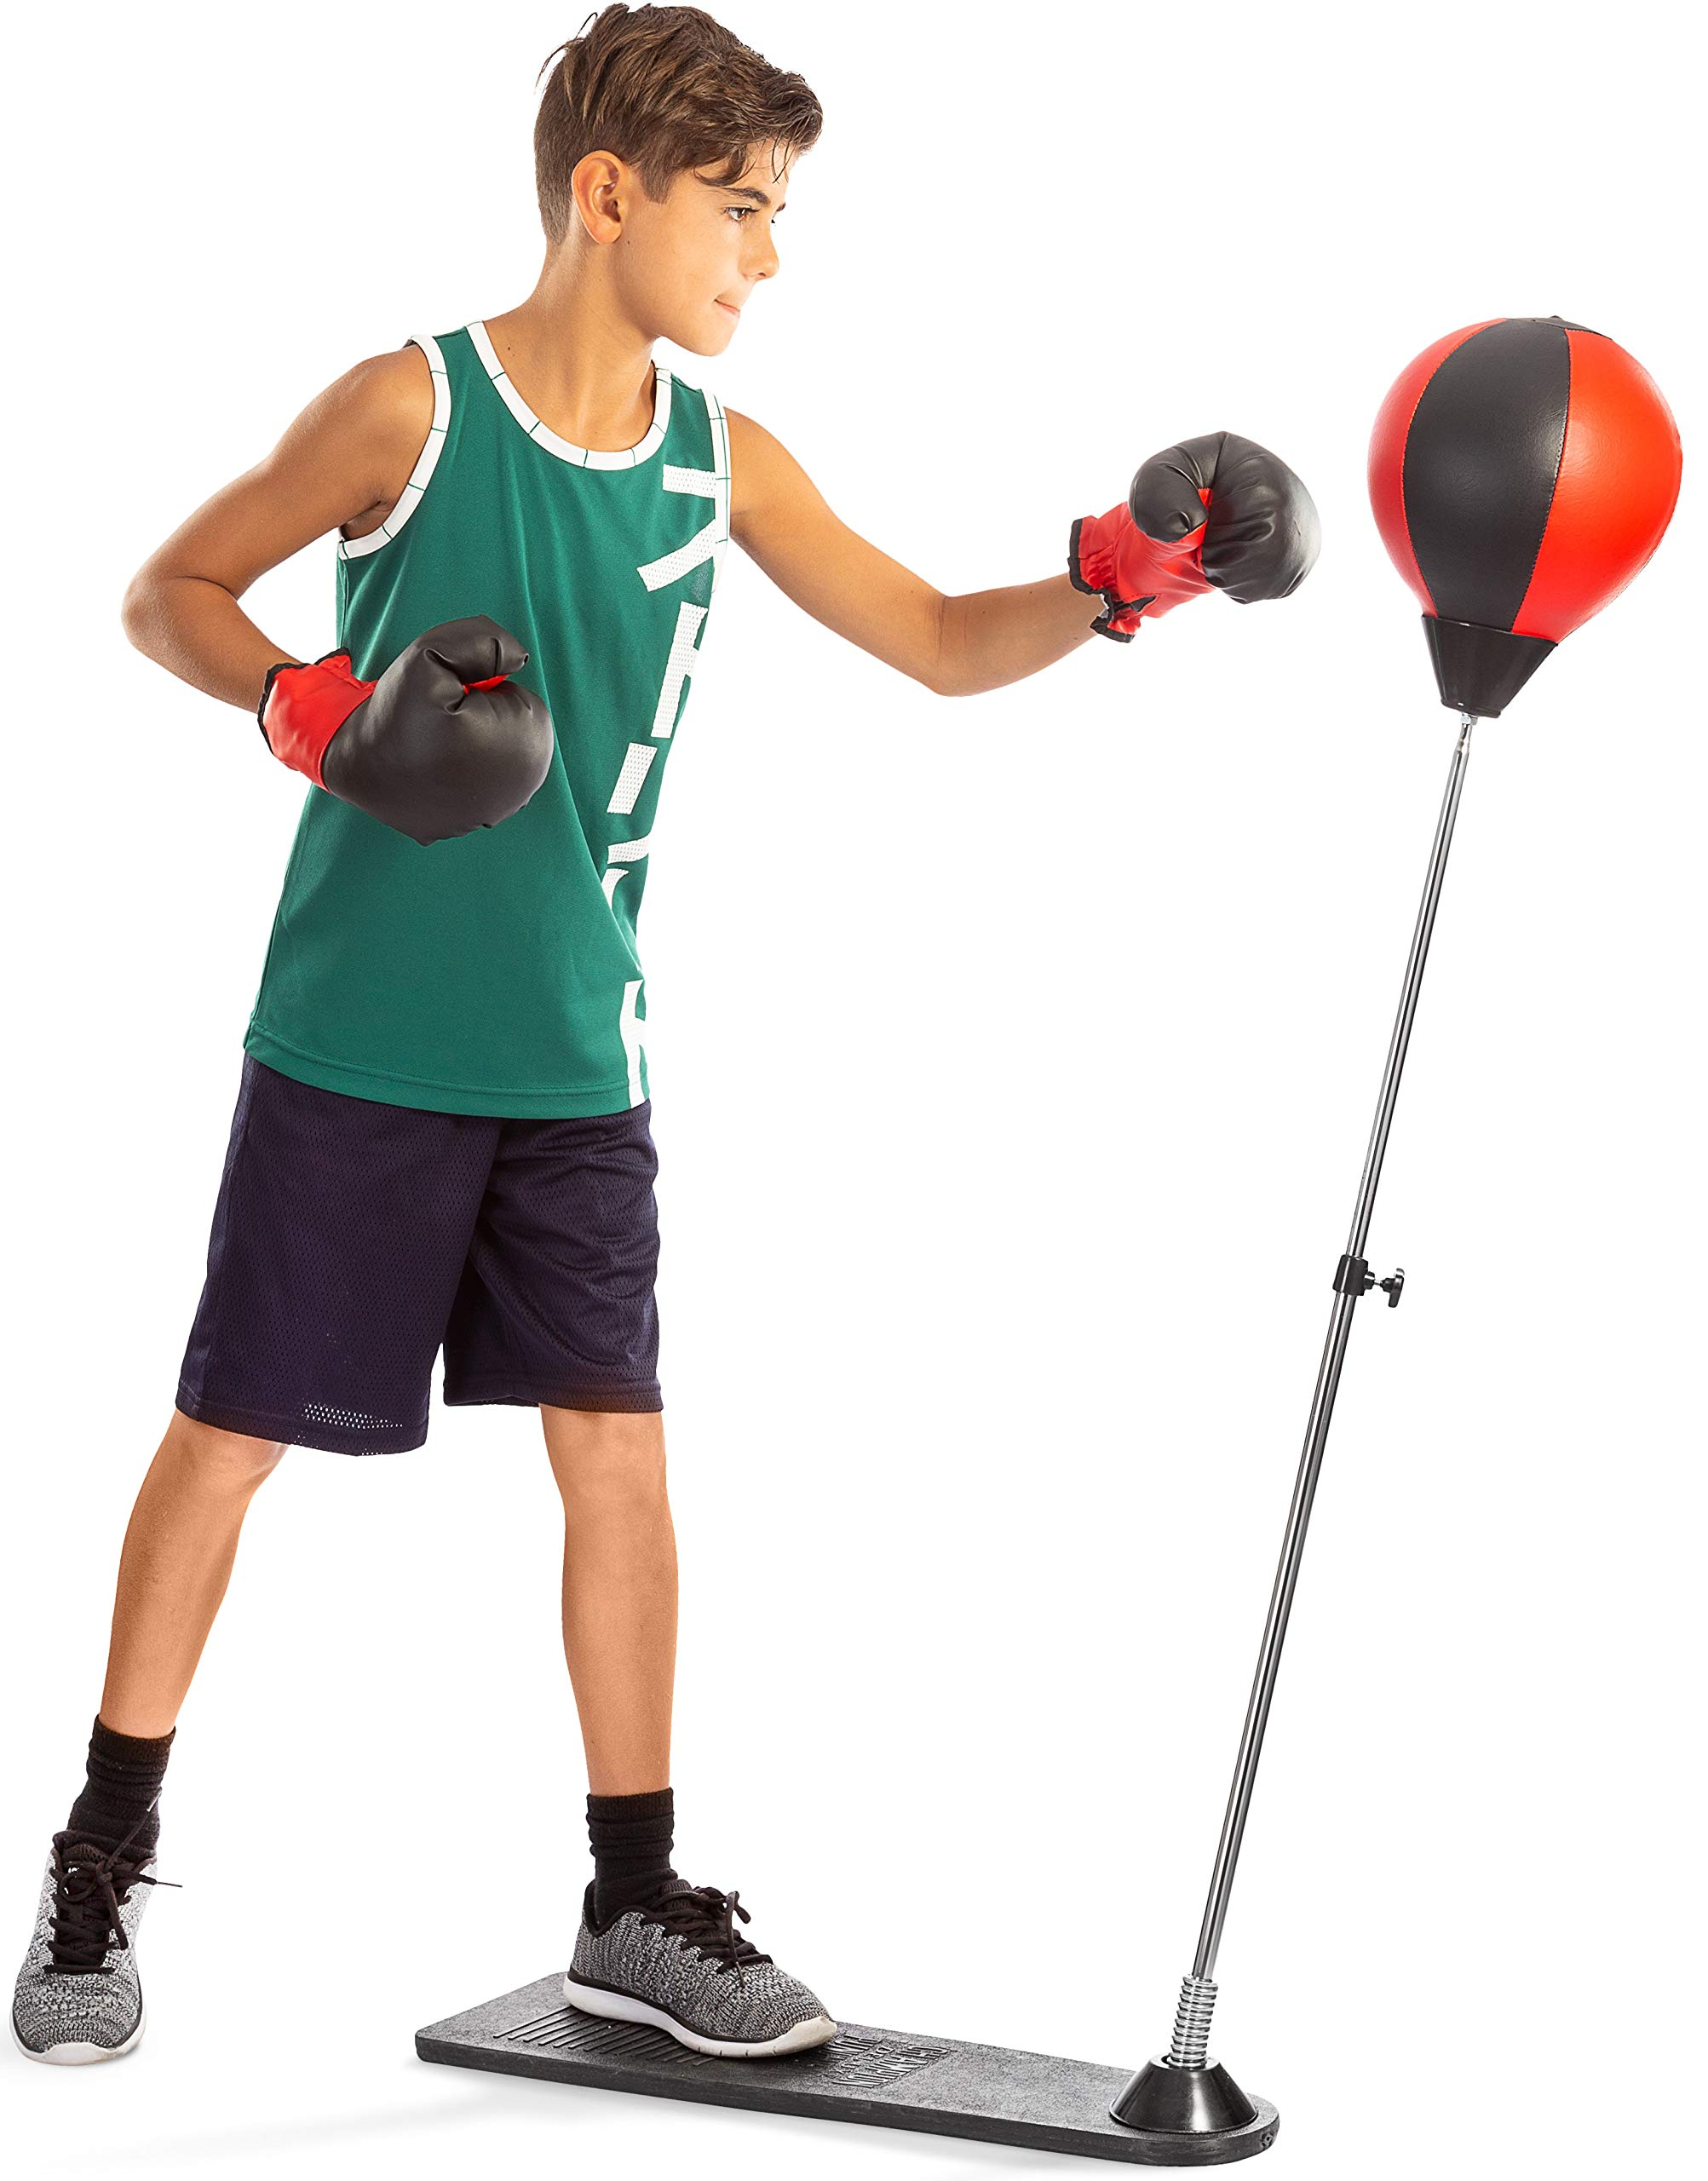 Punching Ball with Stand and Gloves - Height Adjustable - Great Exercise & Fun Activity for Kids by TechTools by Tech Tools